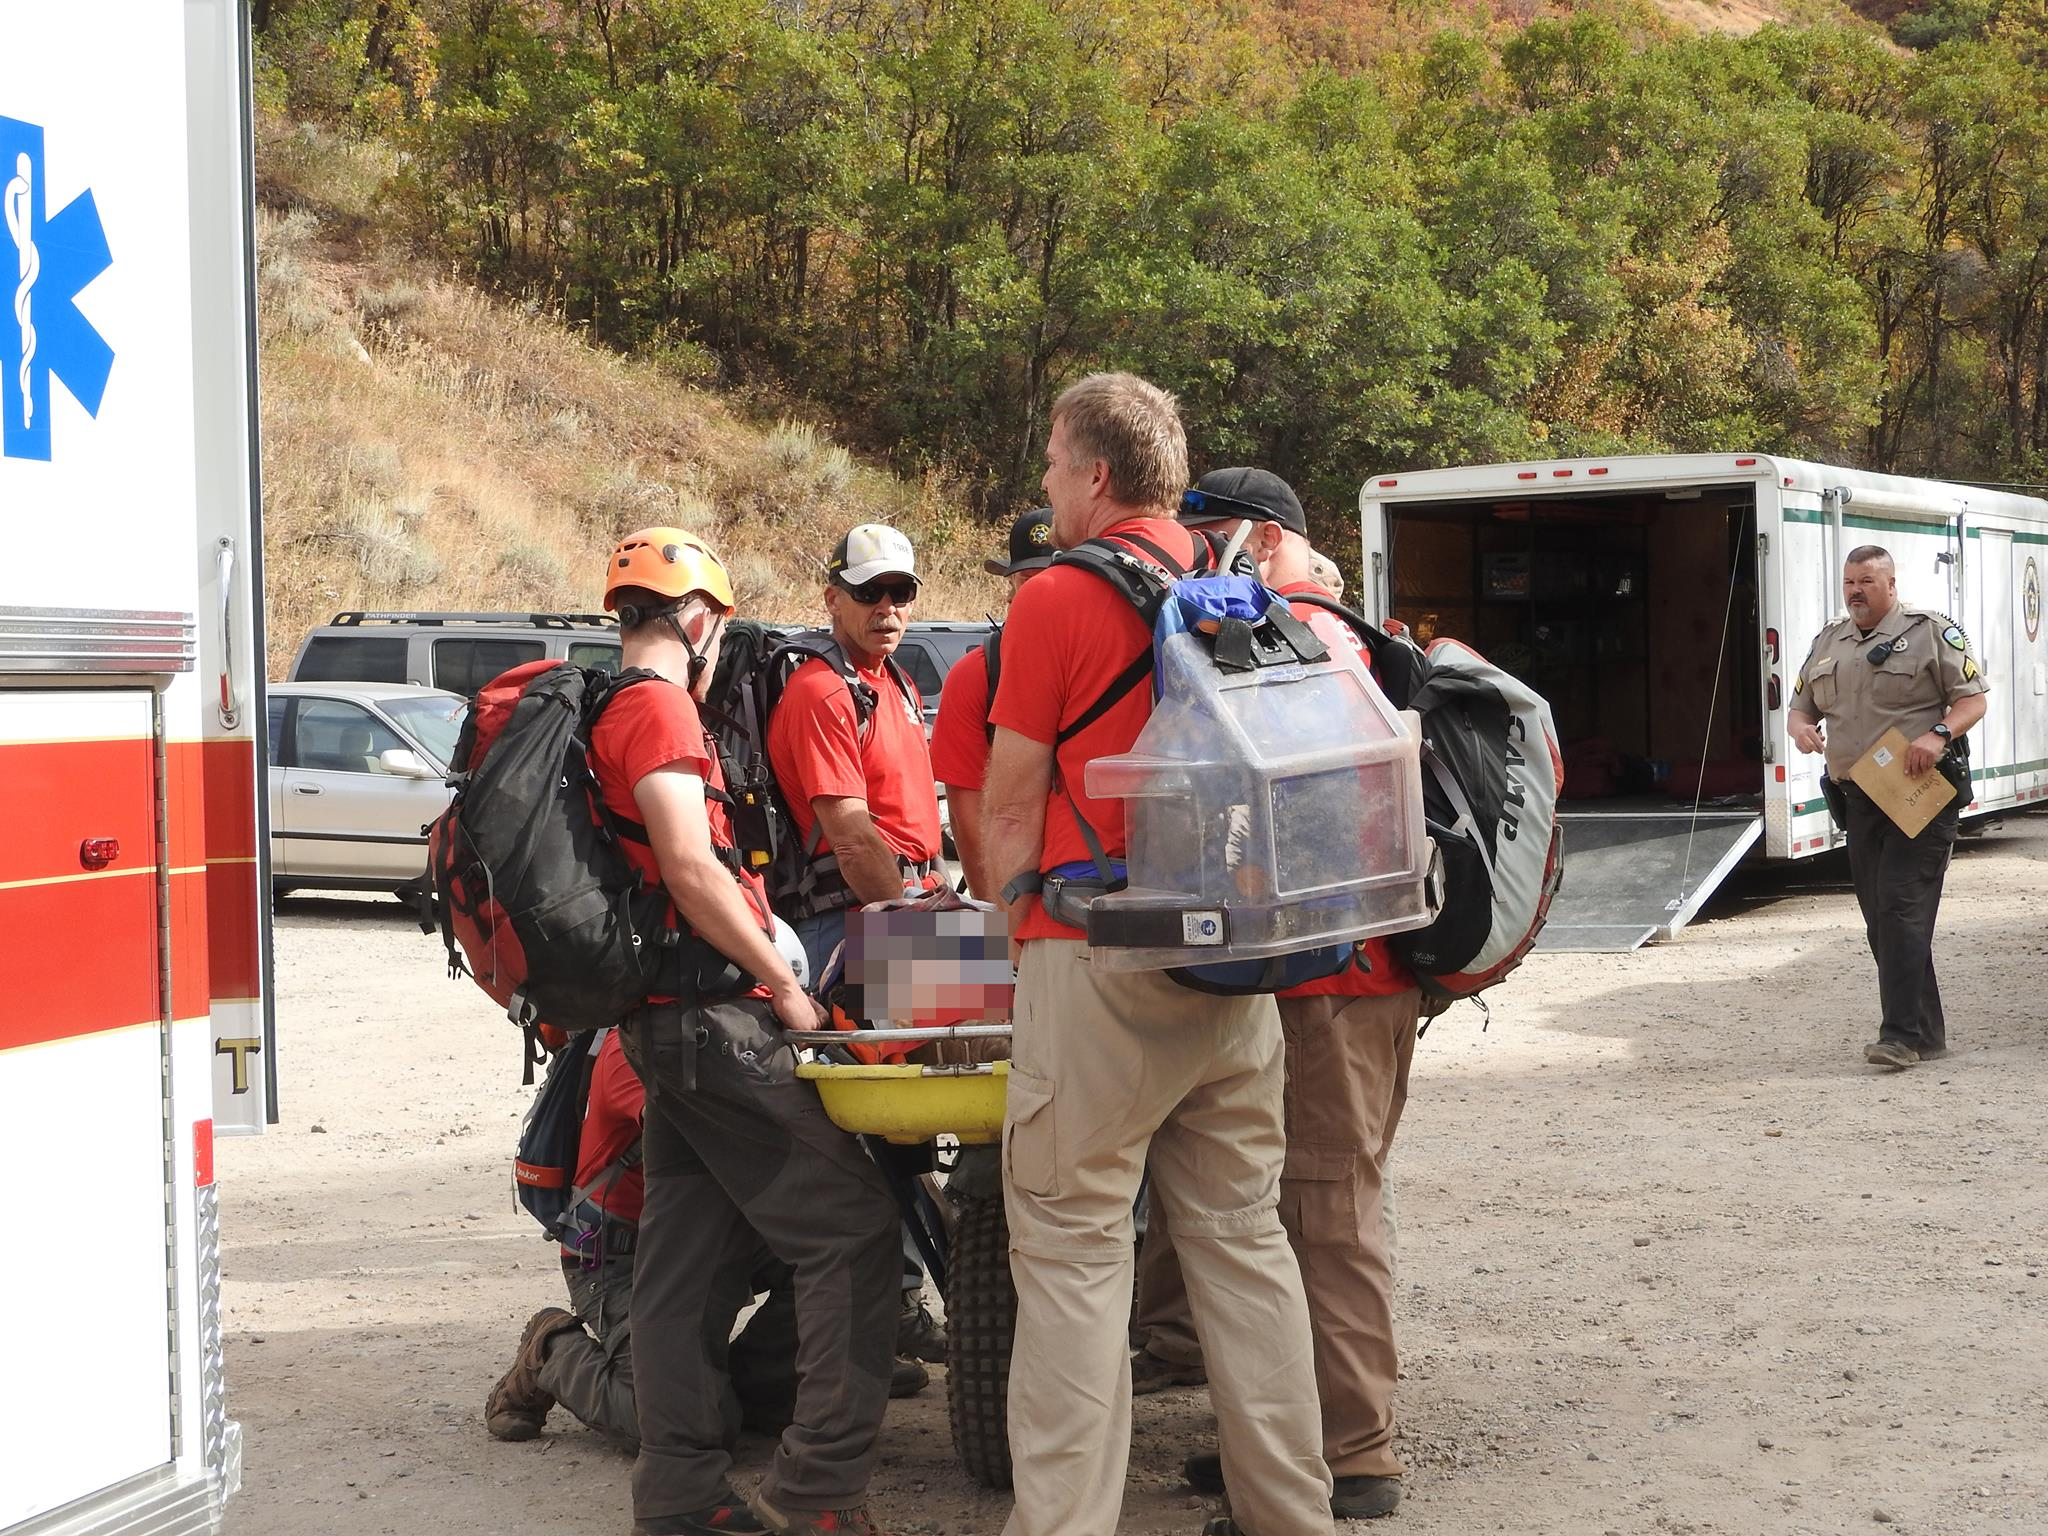 Weber County officials rescued a injured woman hiking near Causey Reservoir in Sunday morning. (Photo: Weber County Sheriff's Office Search & Rescue)